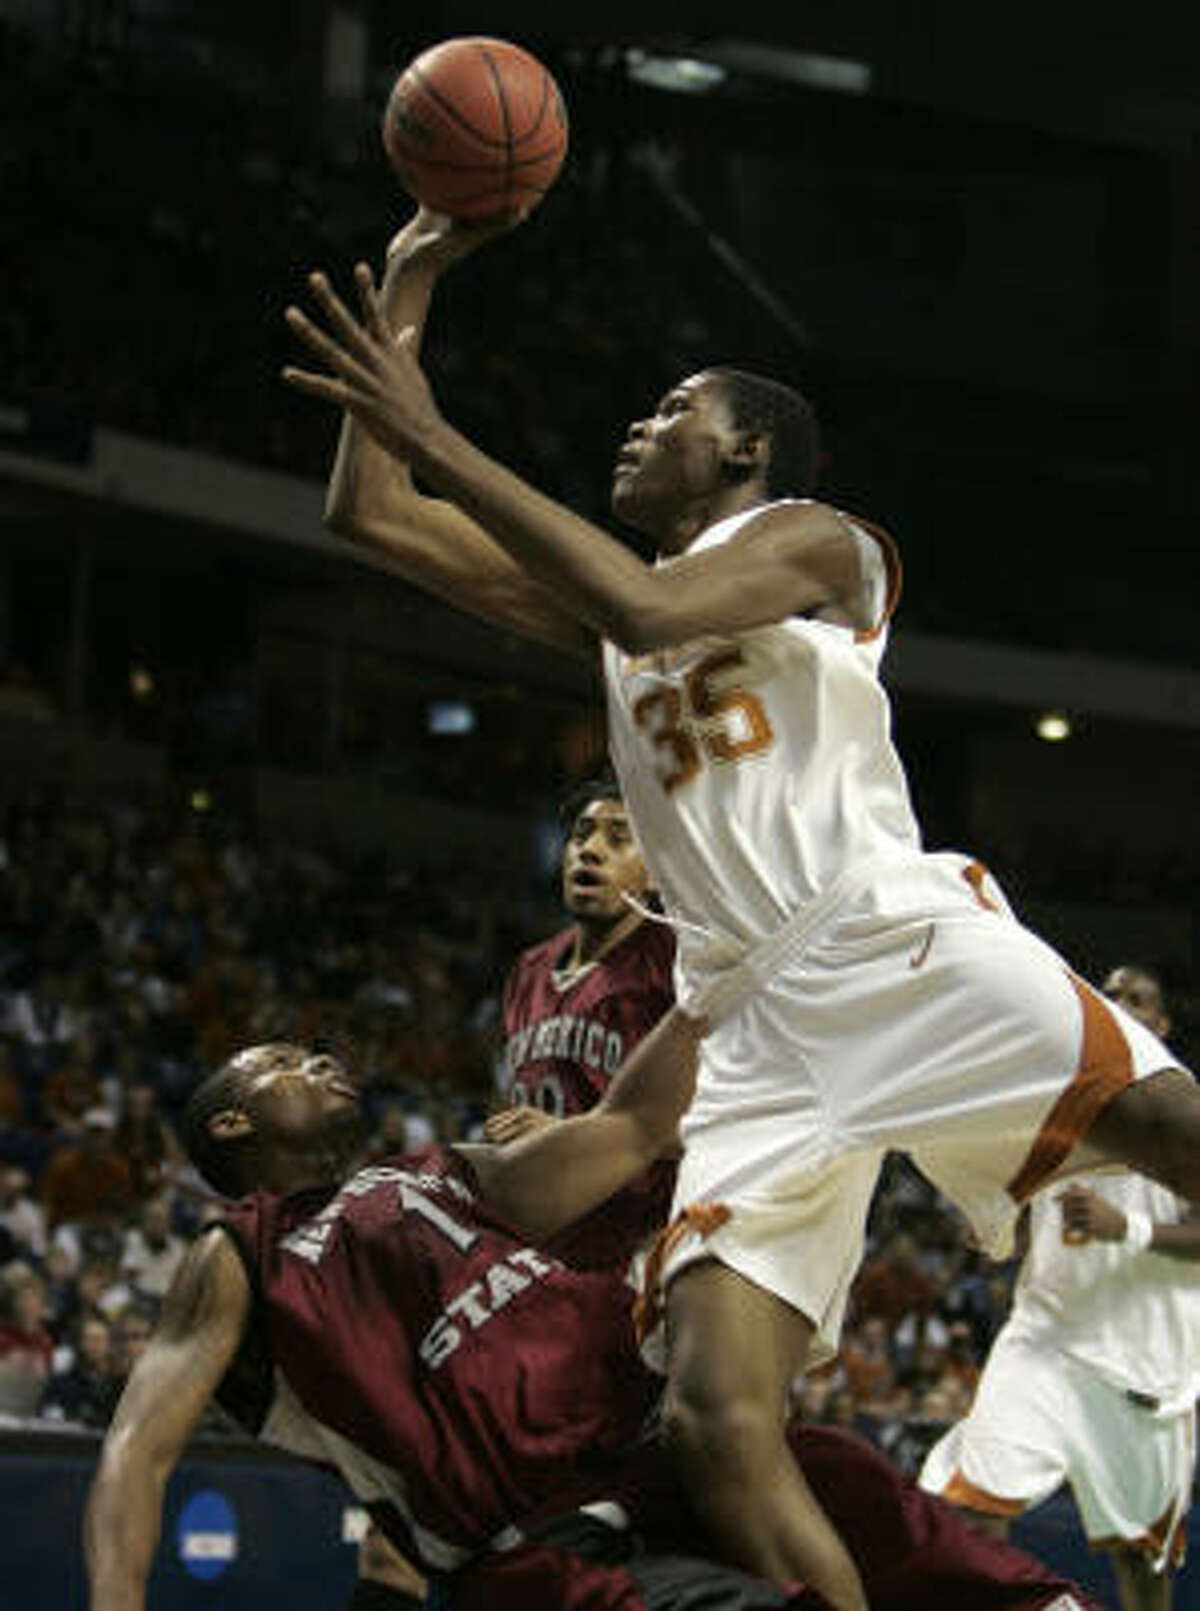 Last season Durant averaged 25.8 points and 11.1 rebounds at Texas.